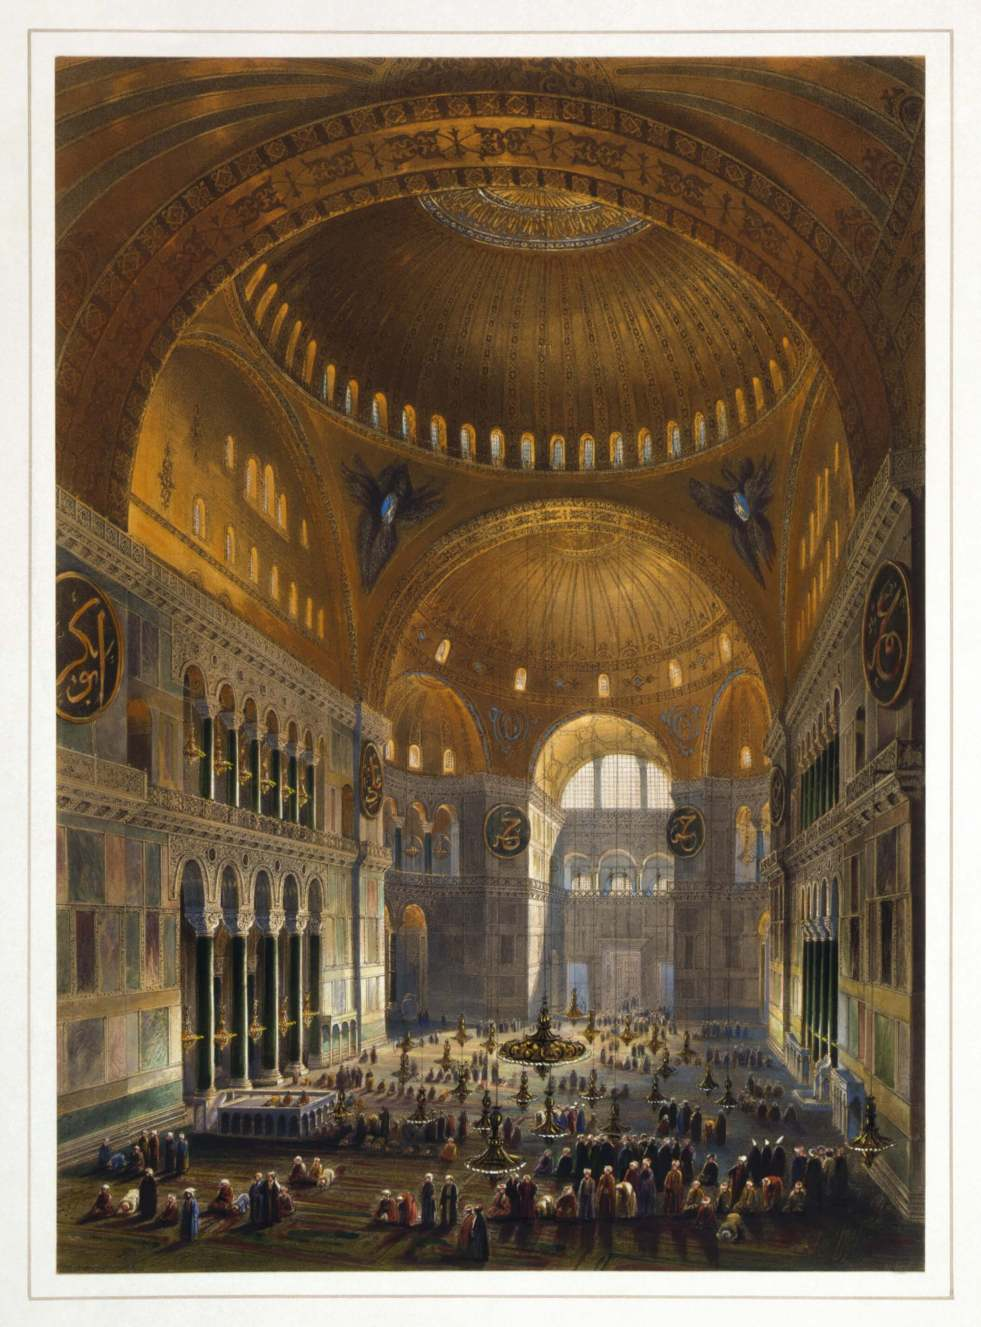 Hagia Sophia as a mosque - 1852 illustration